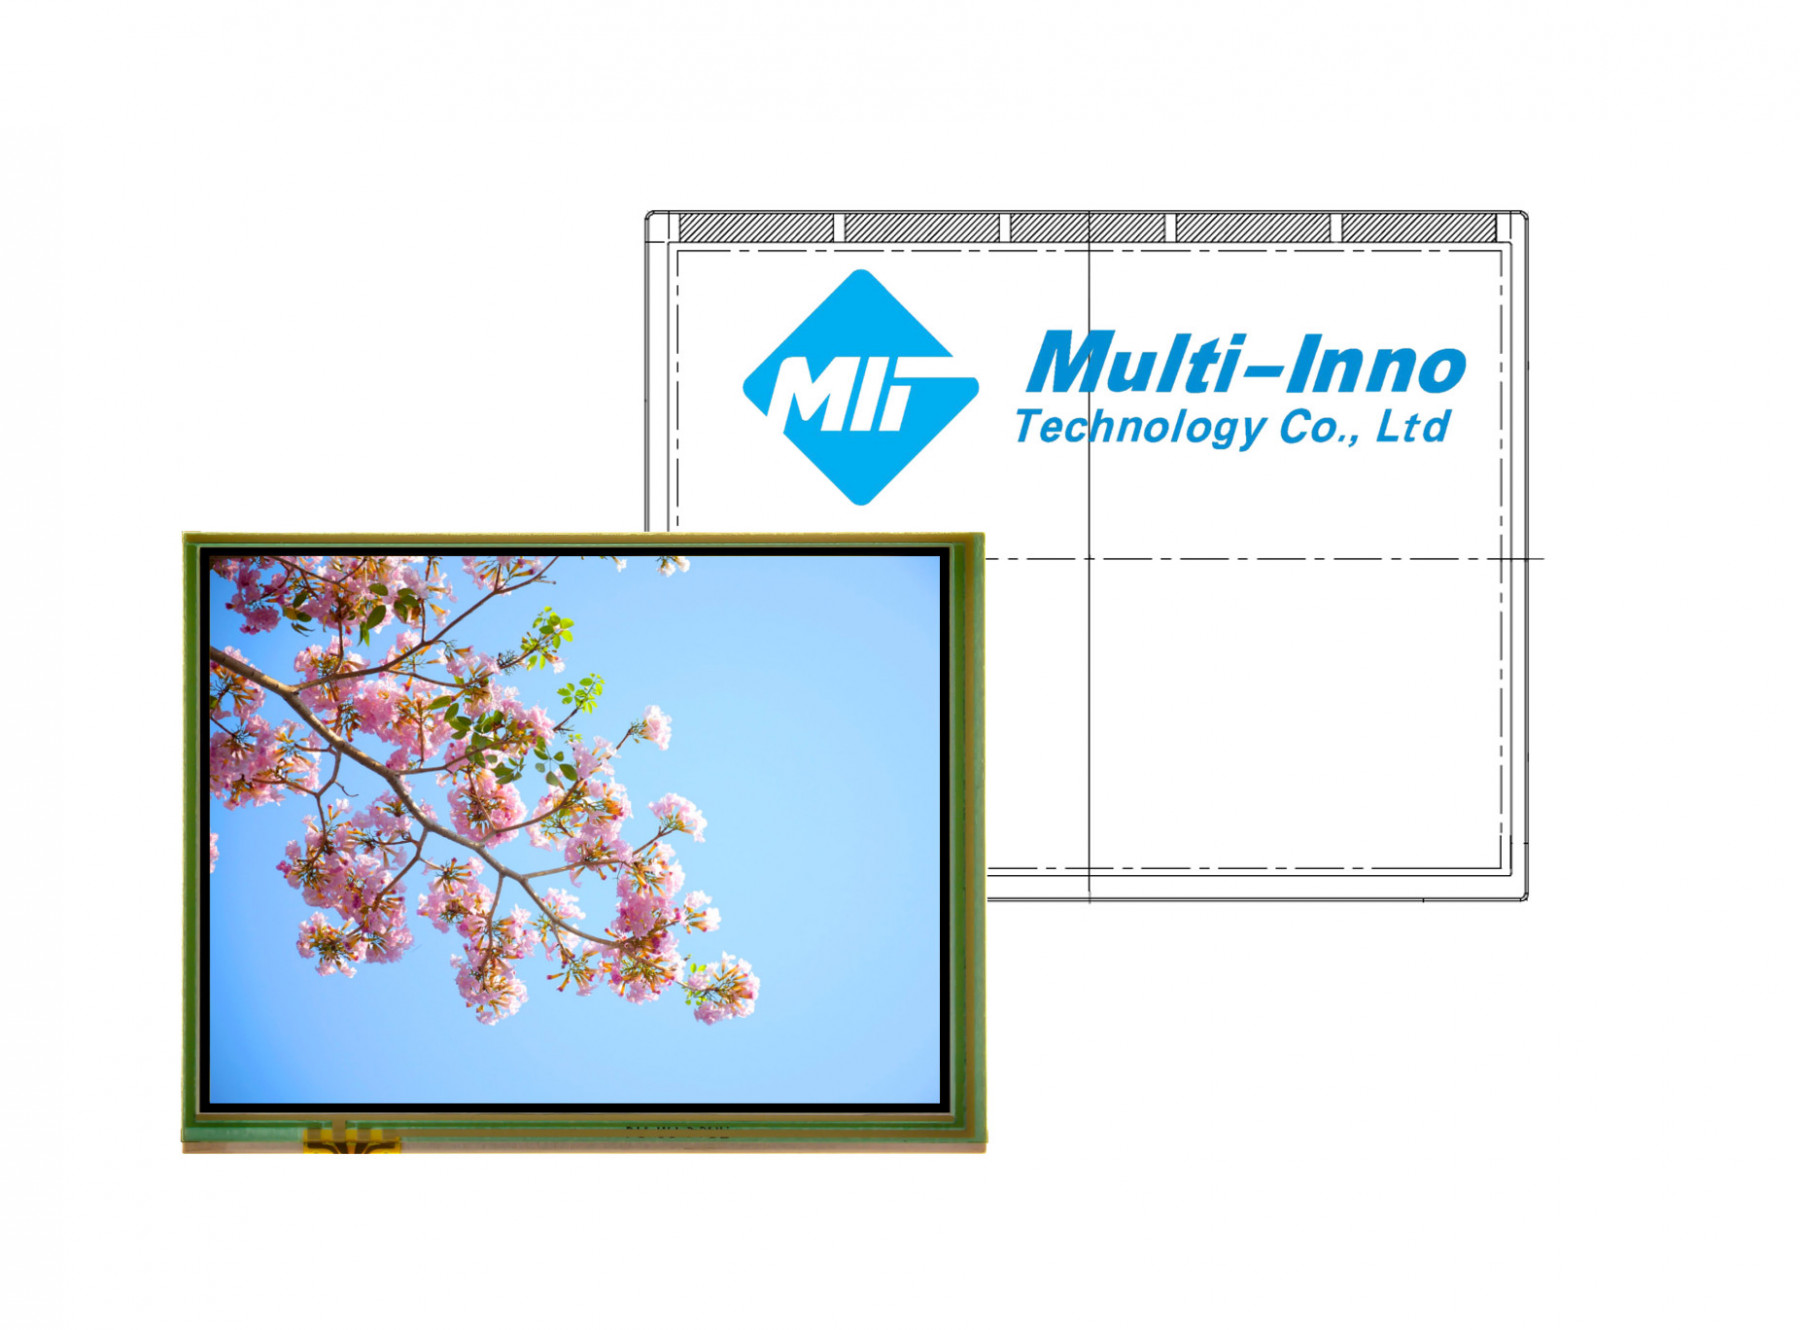 MI0350AET - LCD-TFT display from Multi-Inno Co. (3.5 inches, 320x240, SPI controller, resistive touch screen)